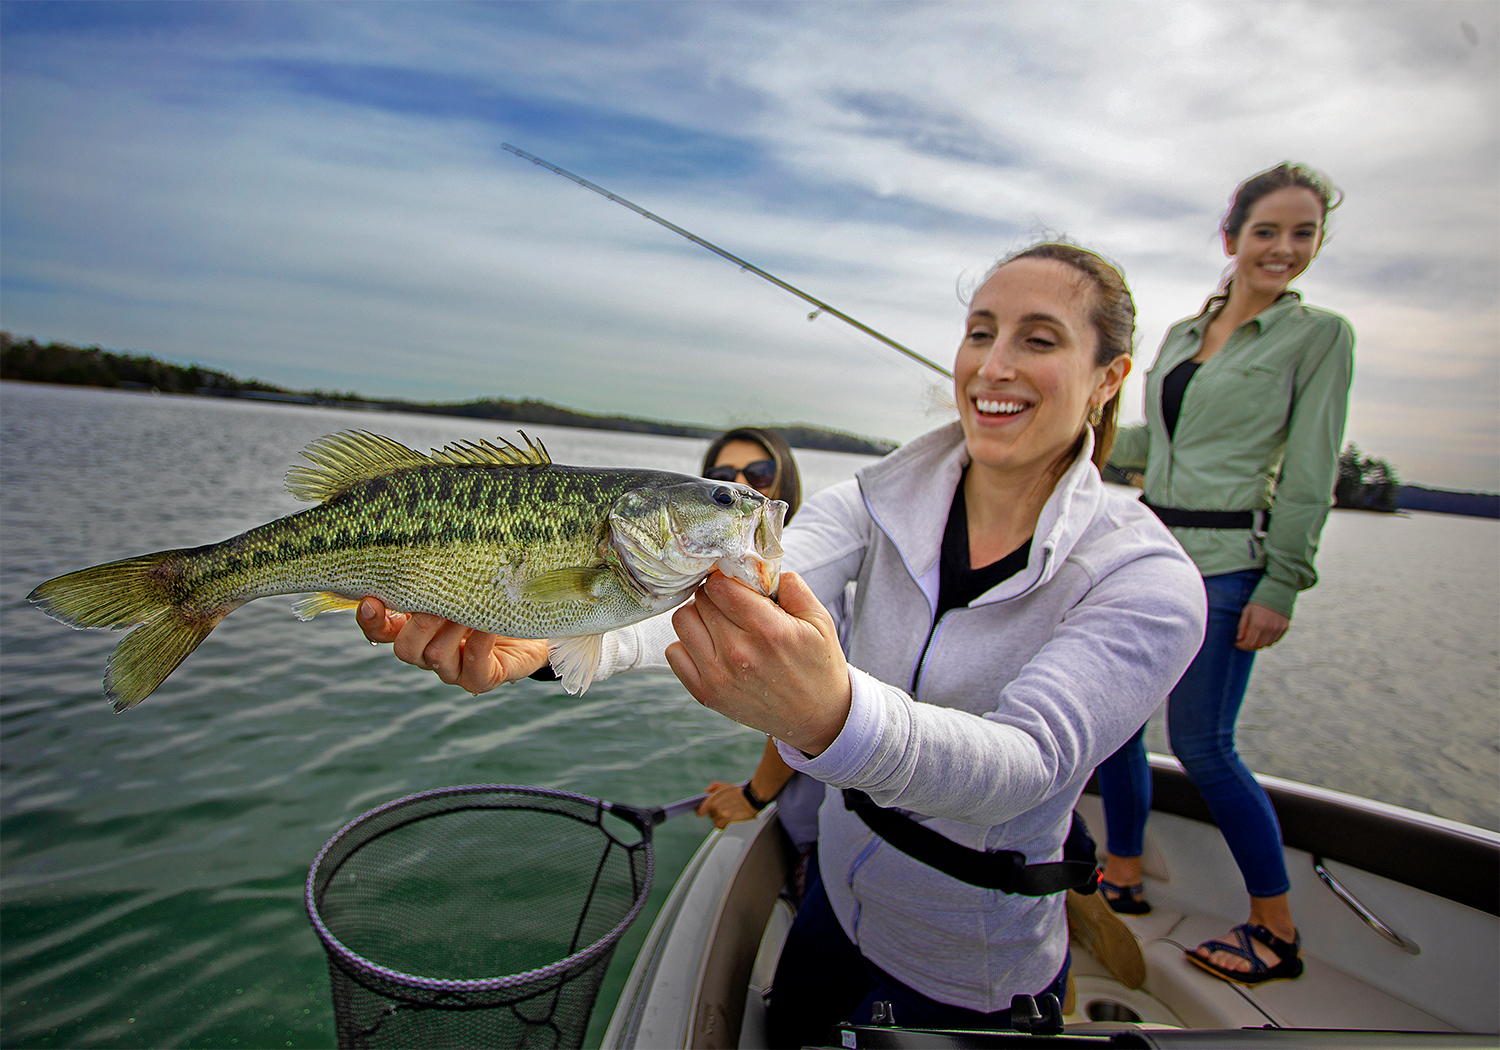 Women Fishing Together On A Boat